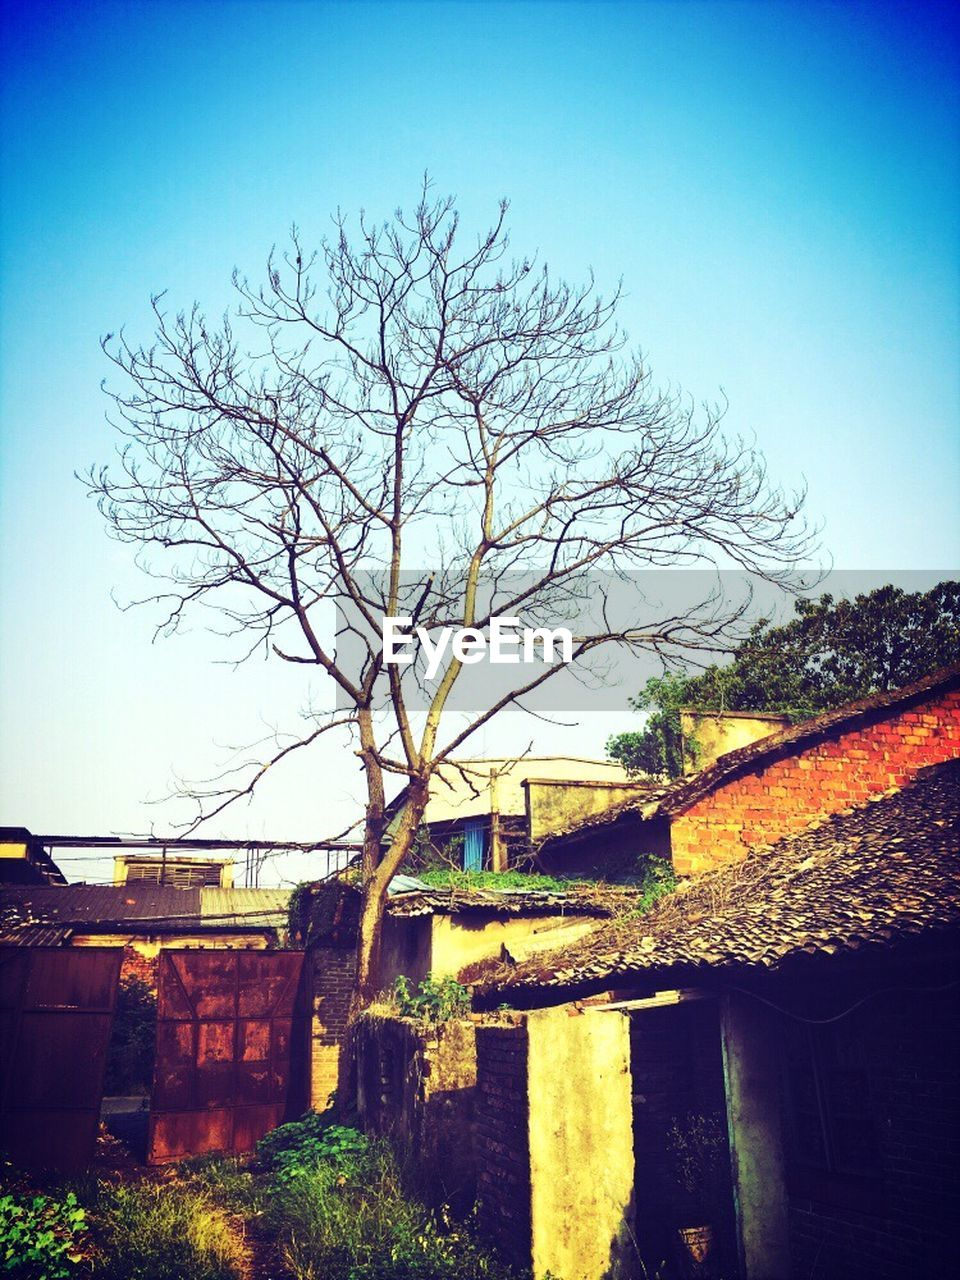 architecture, built structure, bare tree, building exterior, tree, no people, outdoors, sky, day, clear sky, nature, city